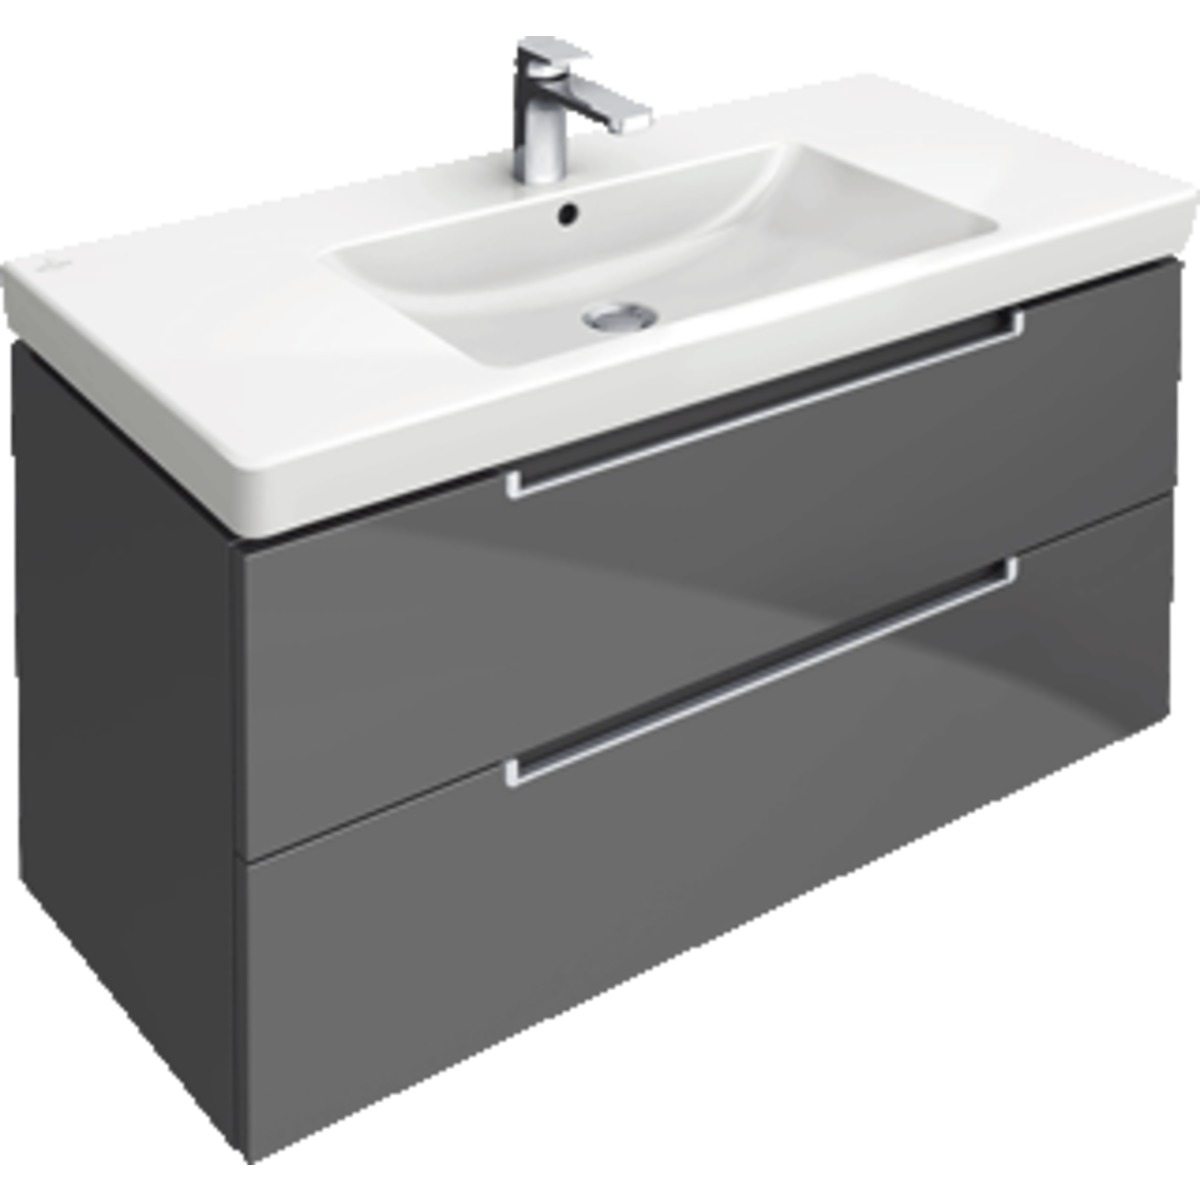 Villeroy boch subway 2 0 meuble sous lavabo for Meubles 2 0